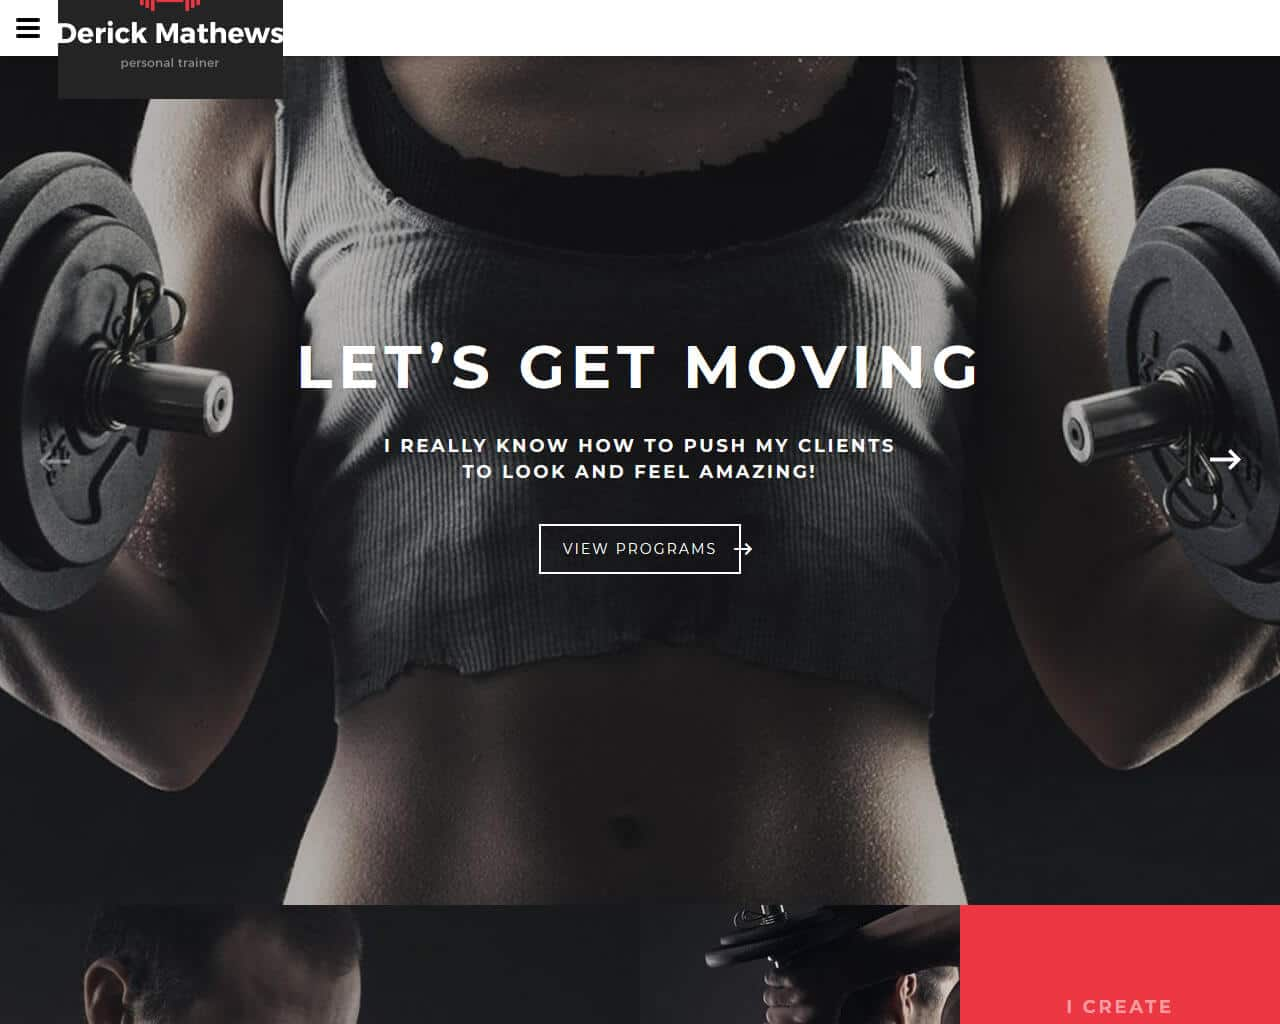 Derick Mathews Website Template